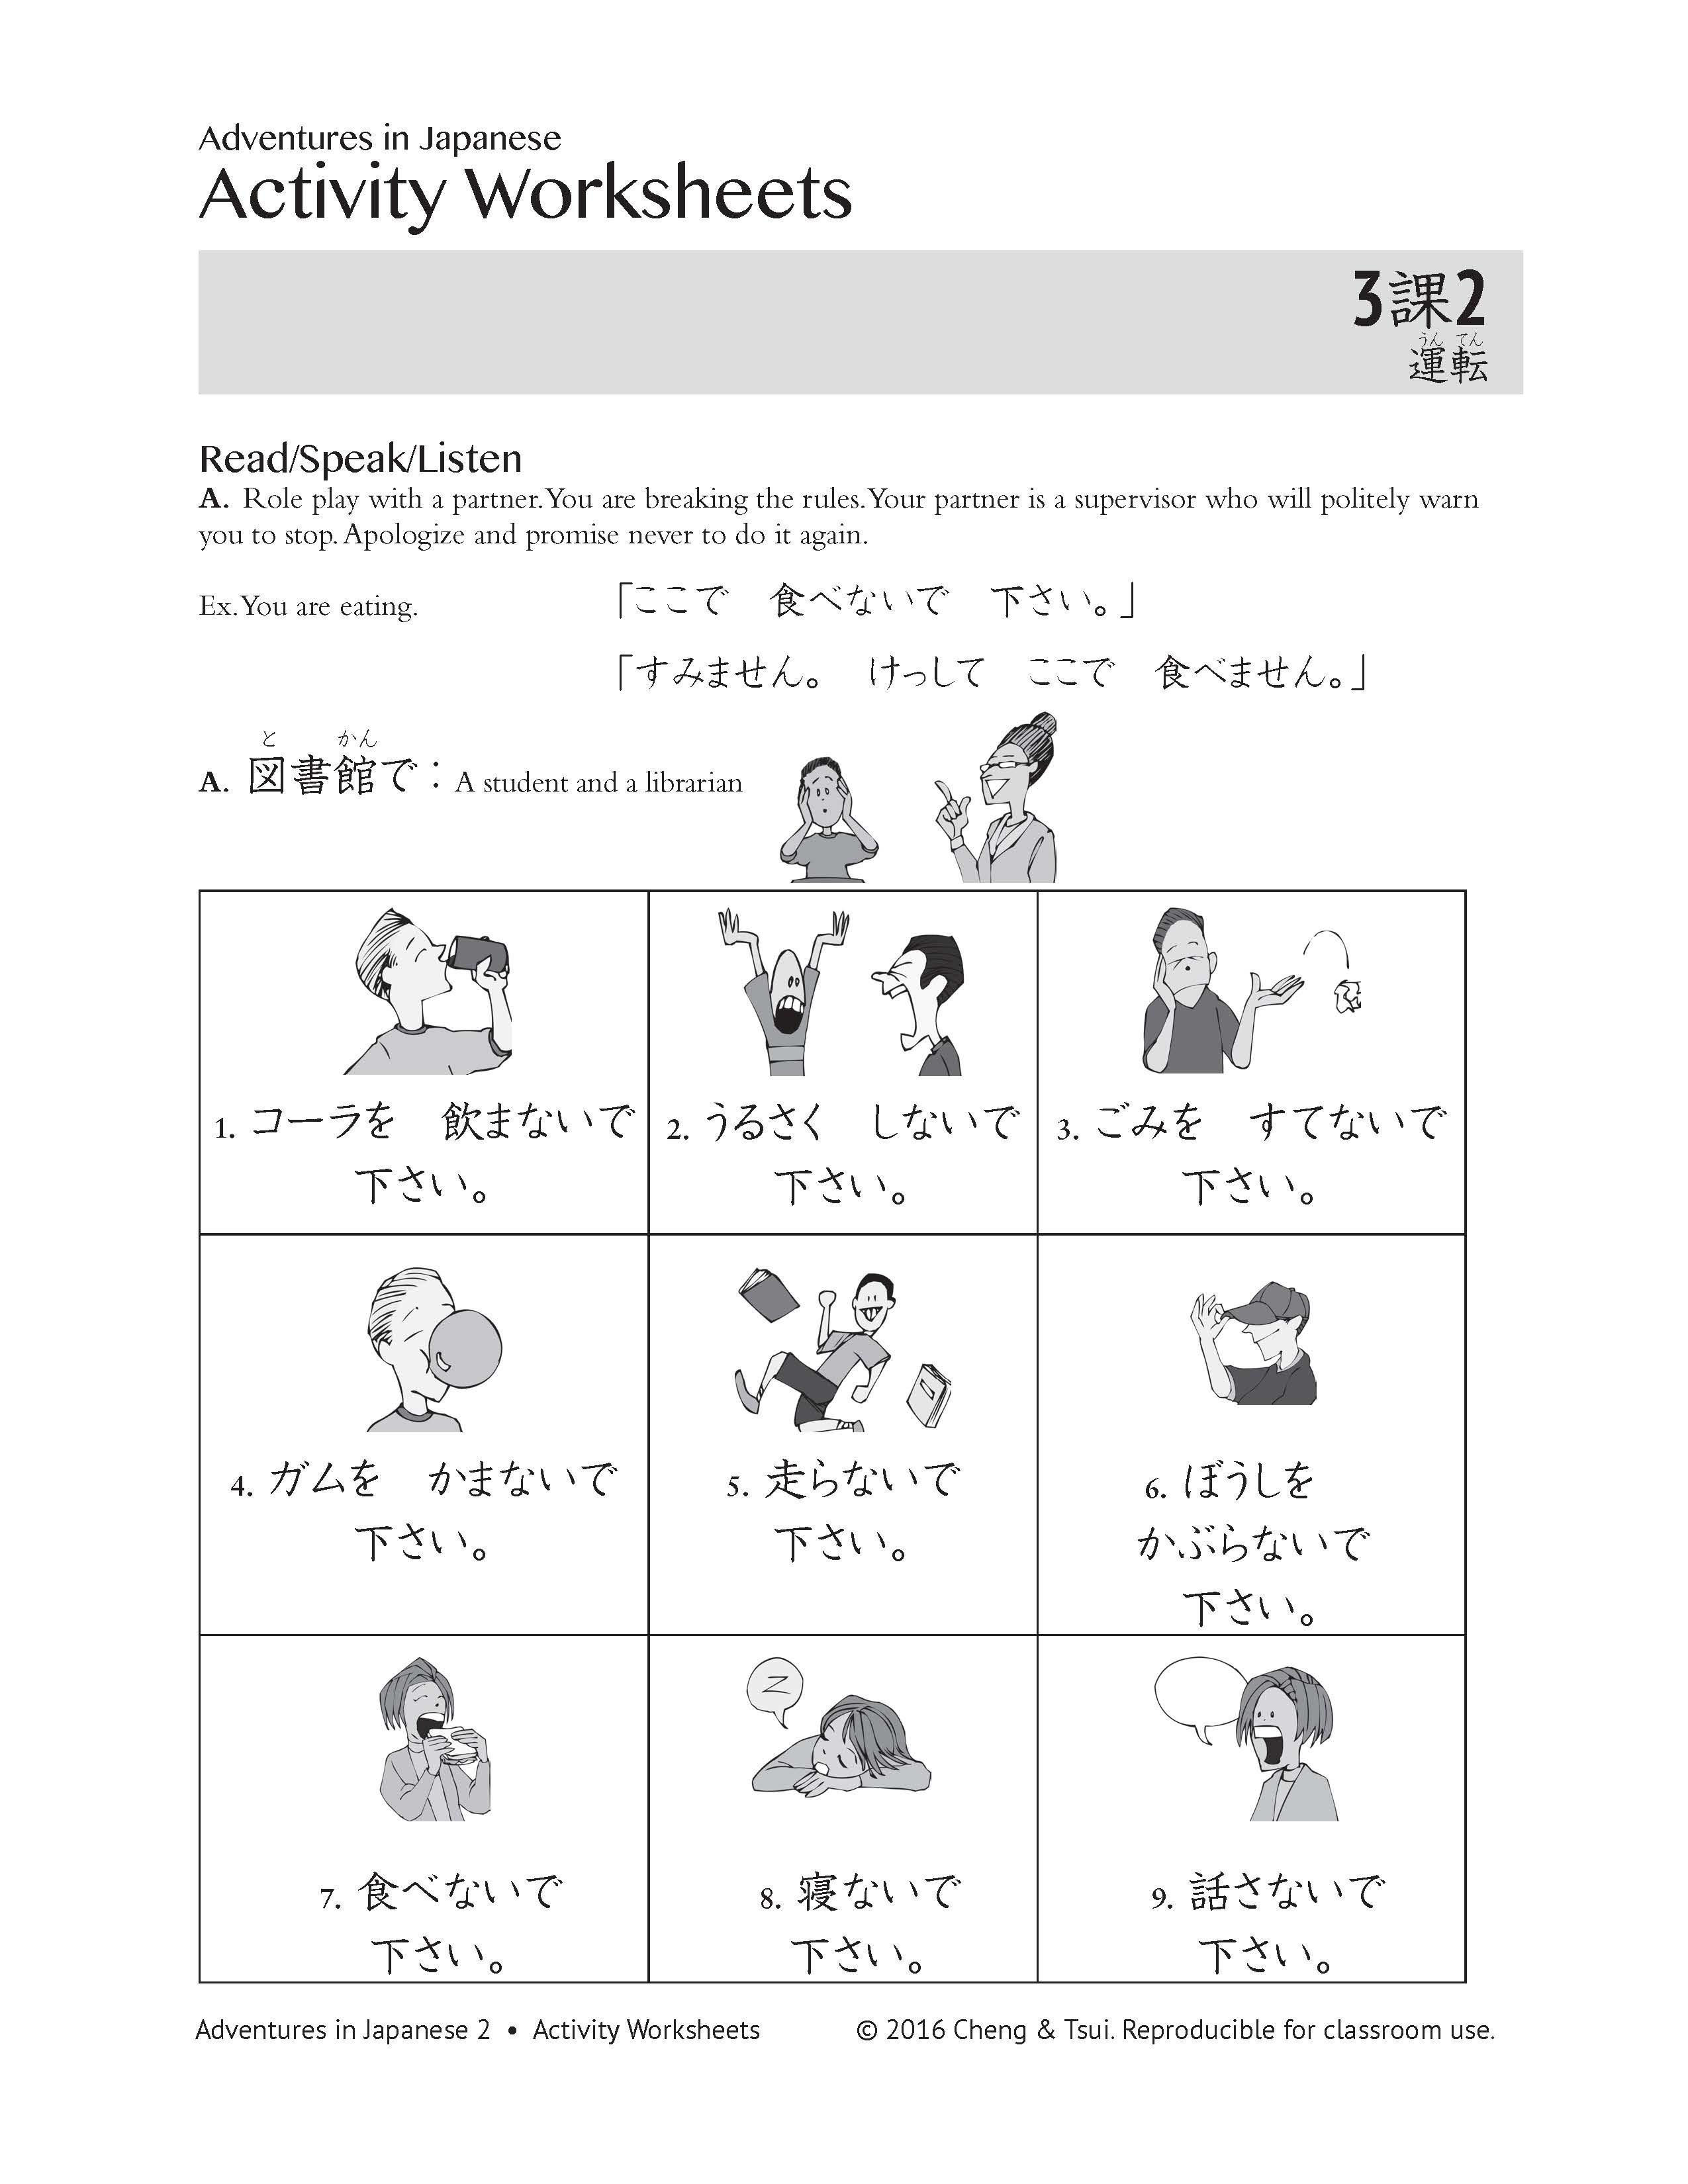 Vol 2 Activity Worksheets